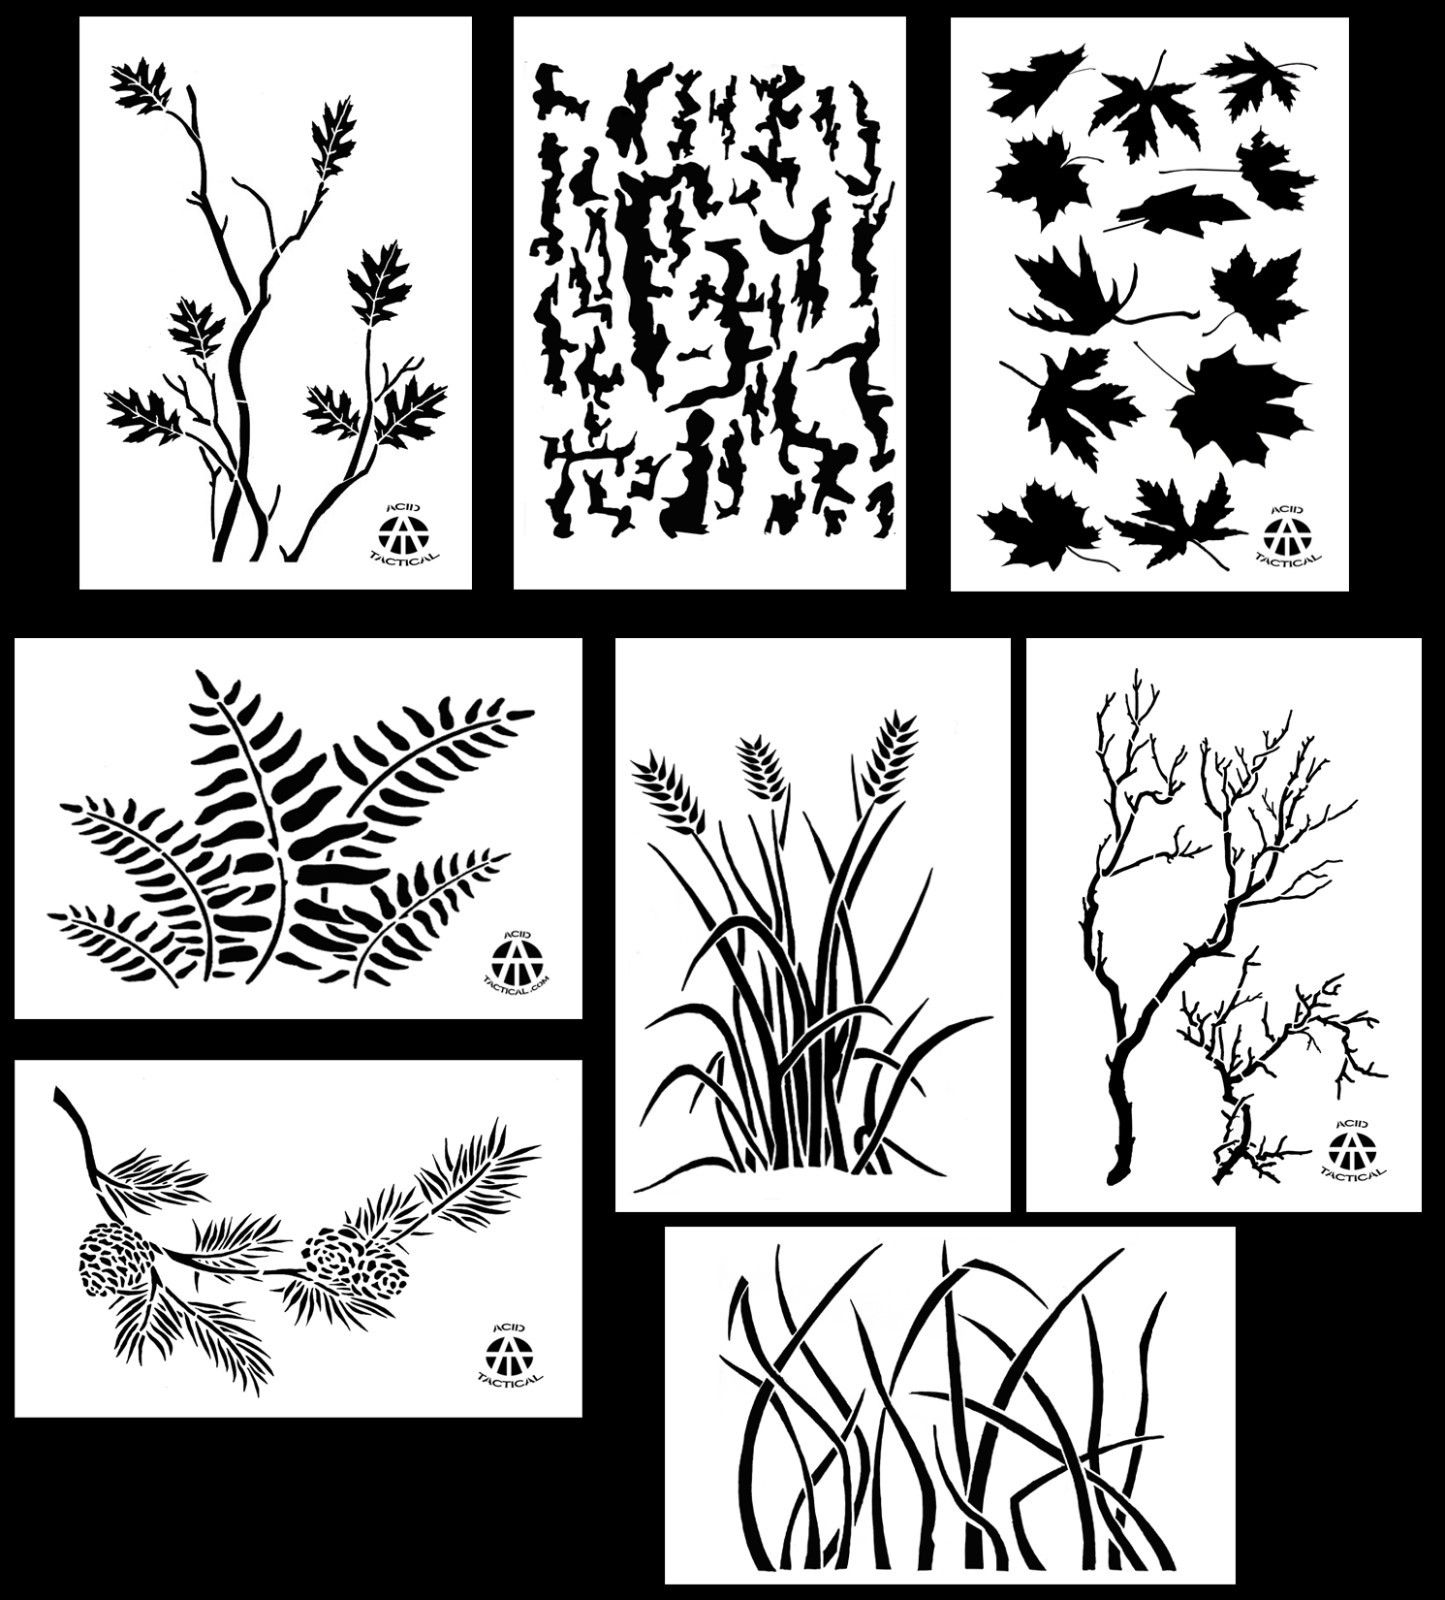 graphic regarding Free Printable Camouflage Stencils referred to as 8Pack! Spray Paint Camouflage Stencils 10 Mil Do it yourself Camo Templates 14\